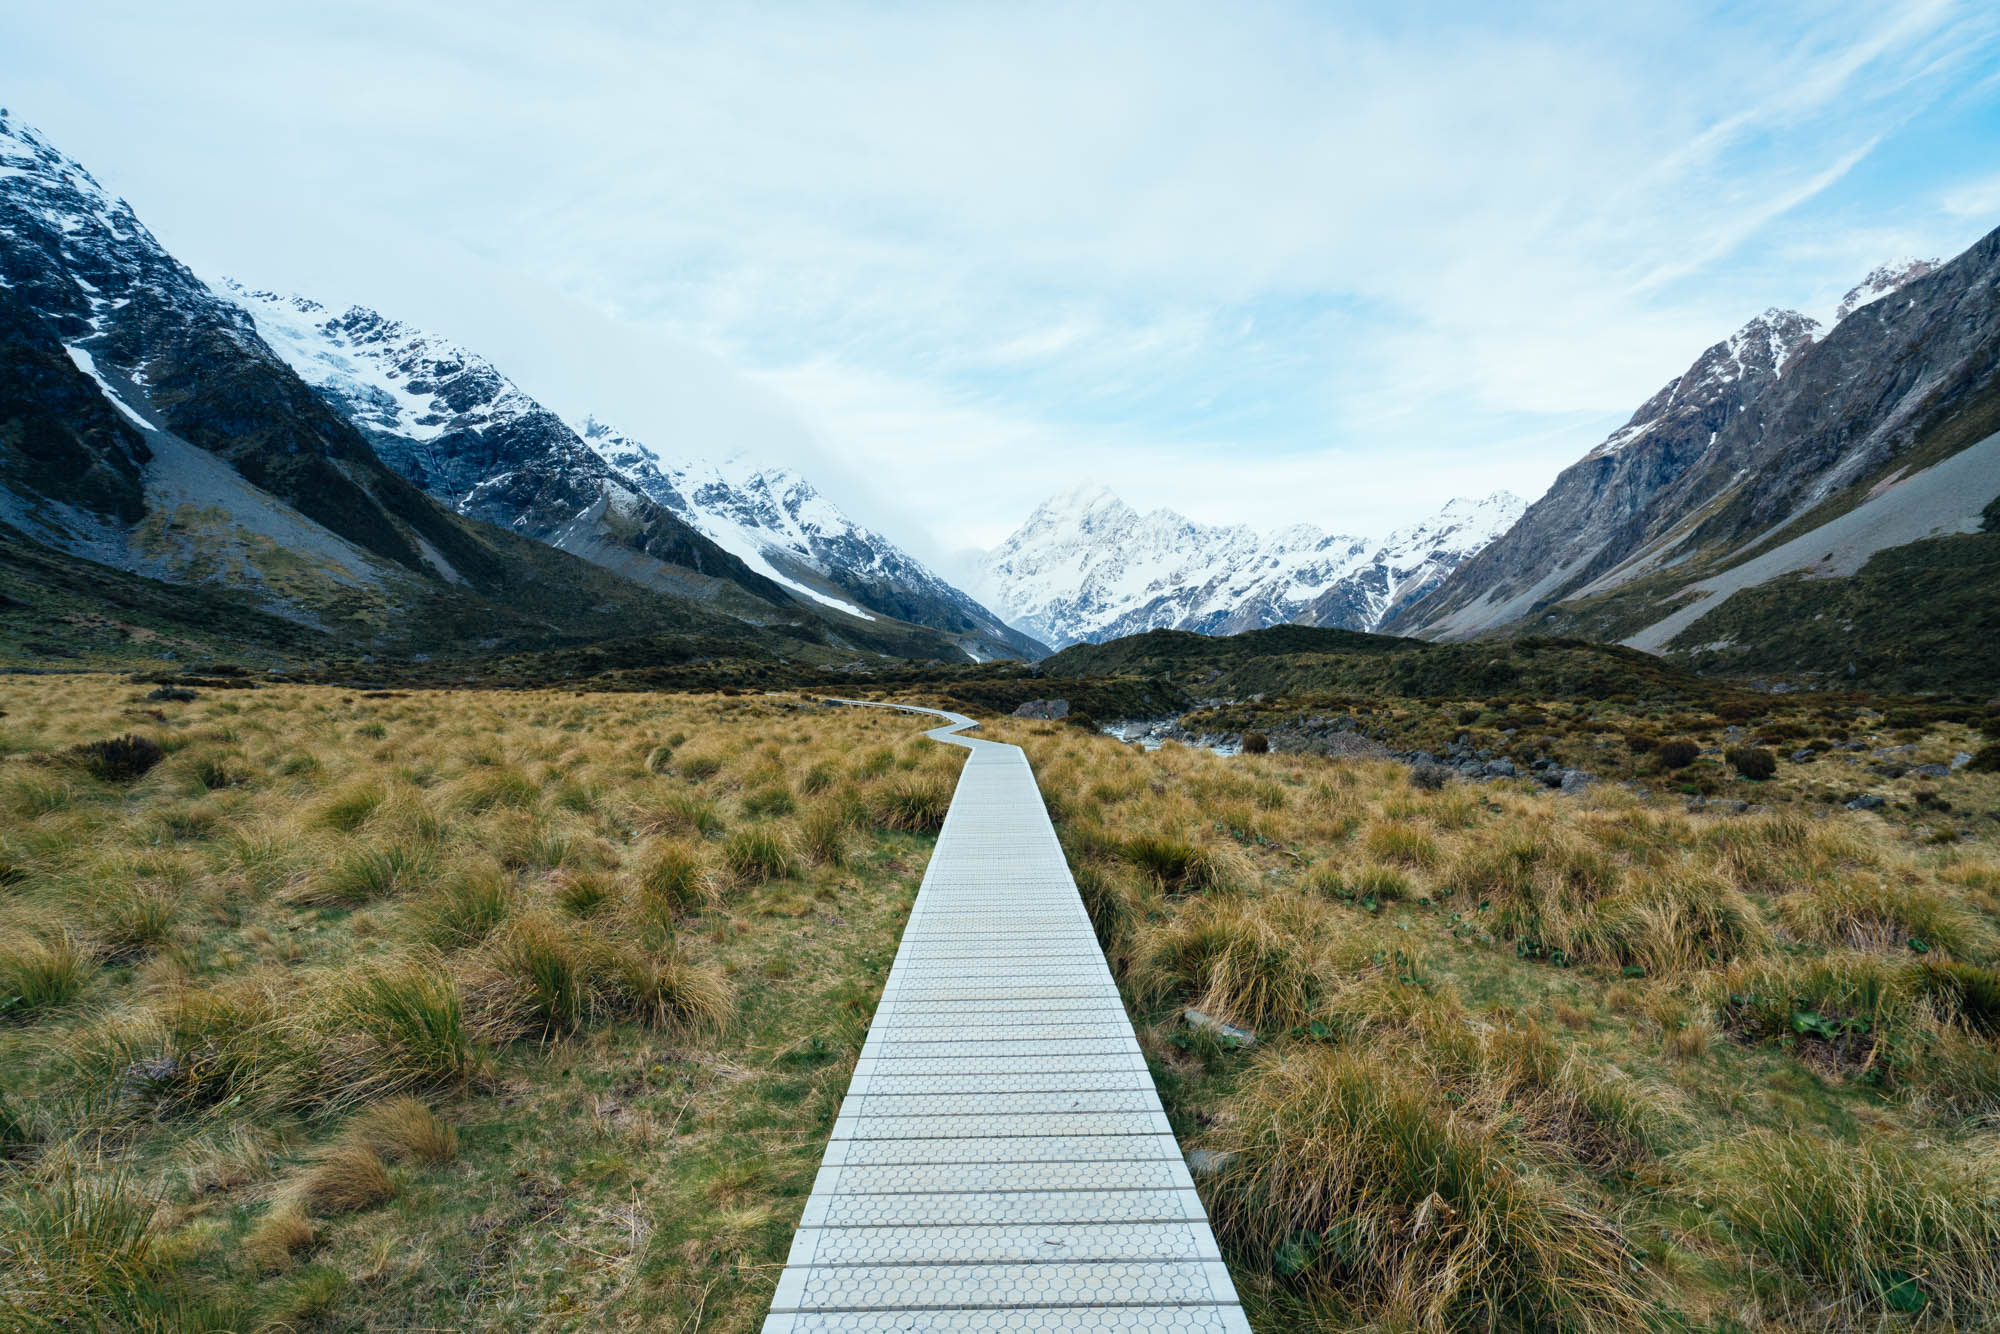 Exploring the Hooker Valley at the Aoraki / Mount Cook National Park in New Zealand. I love spending time in nature to dream about where I am heading. Always looking forward.